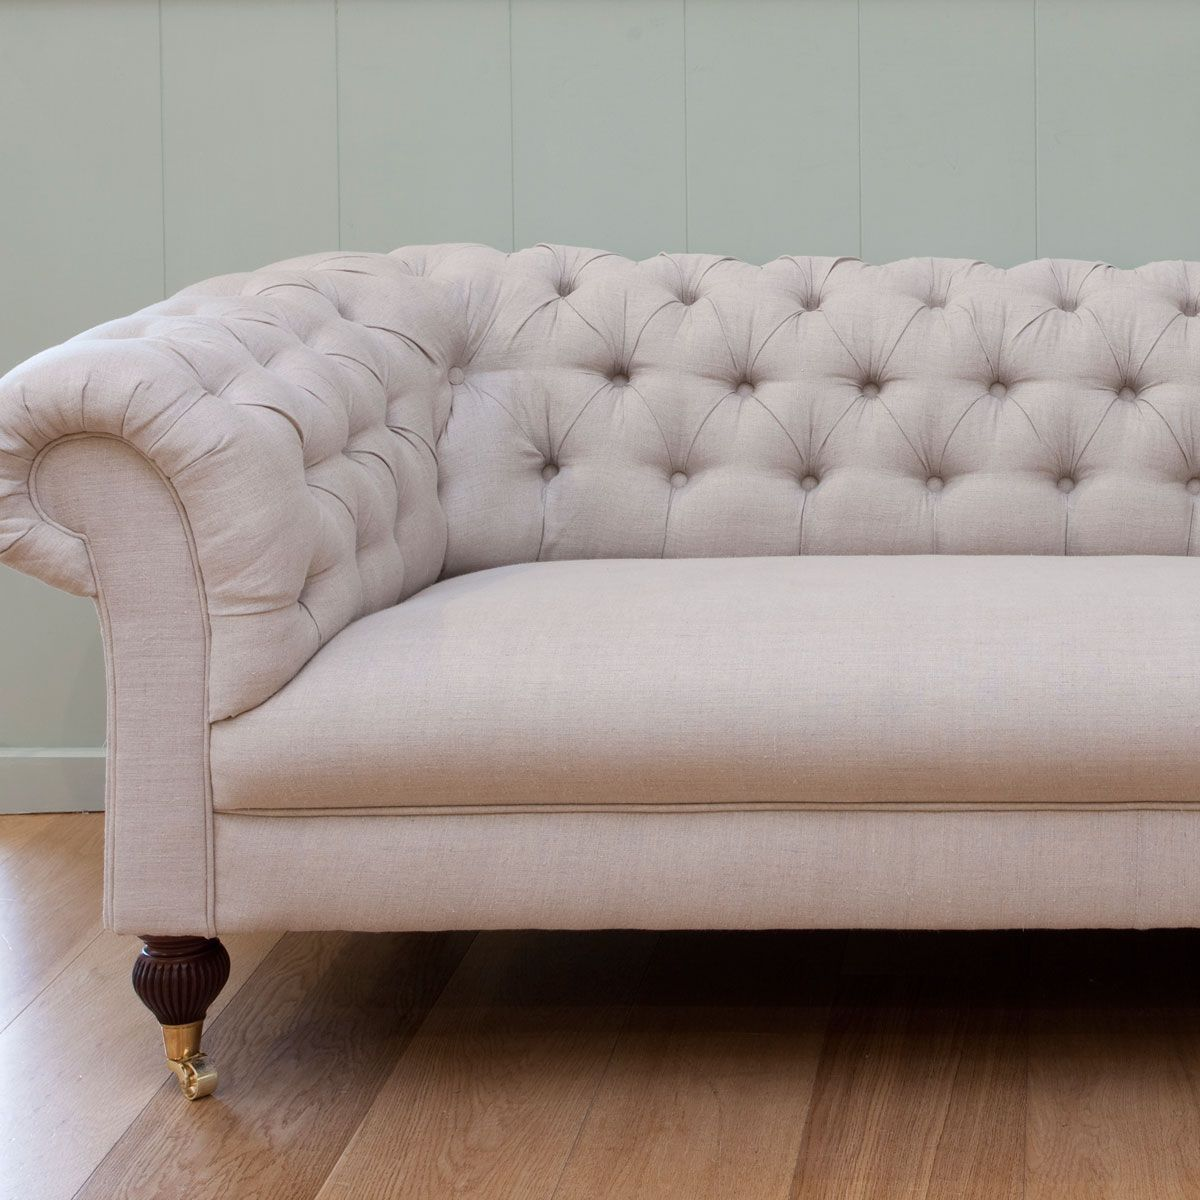 fabric cover for leather sofa camden 3 seater 2 set chesterfield high back preferred home design